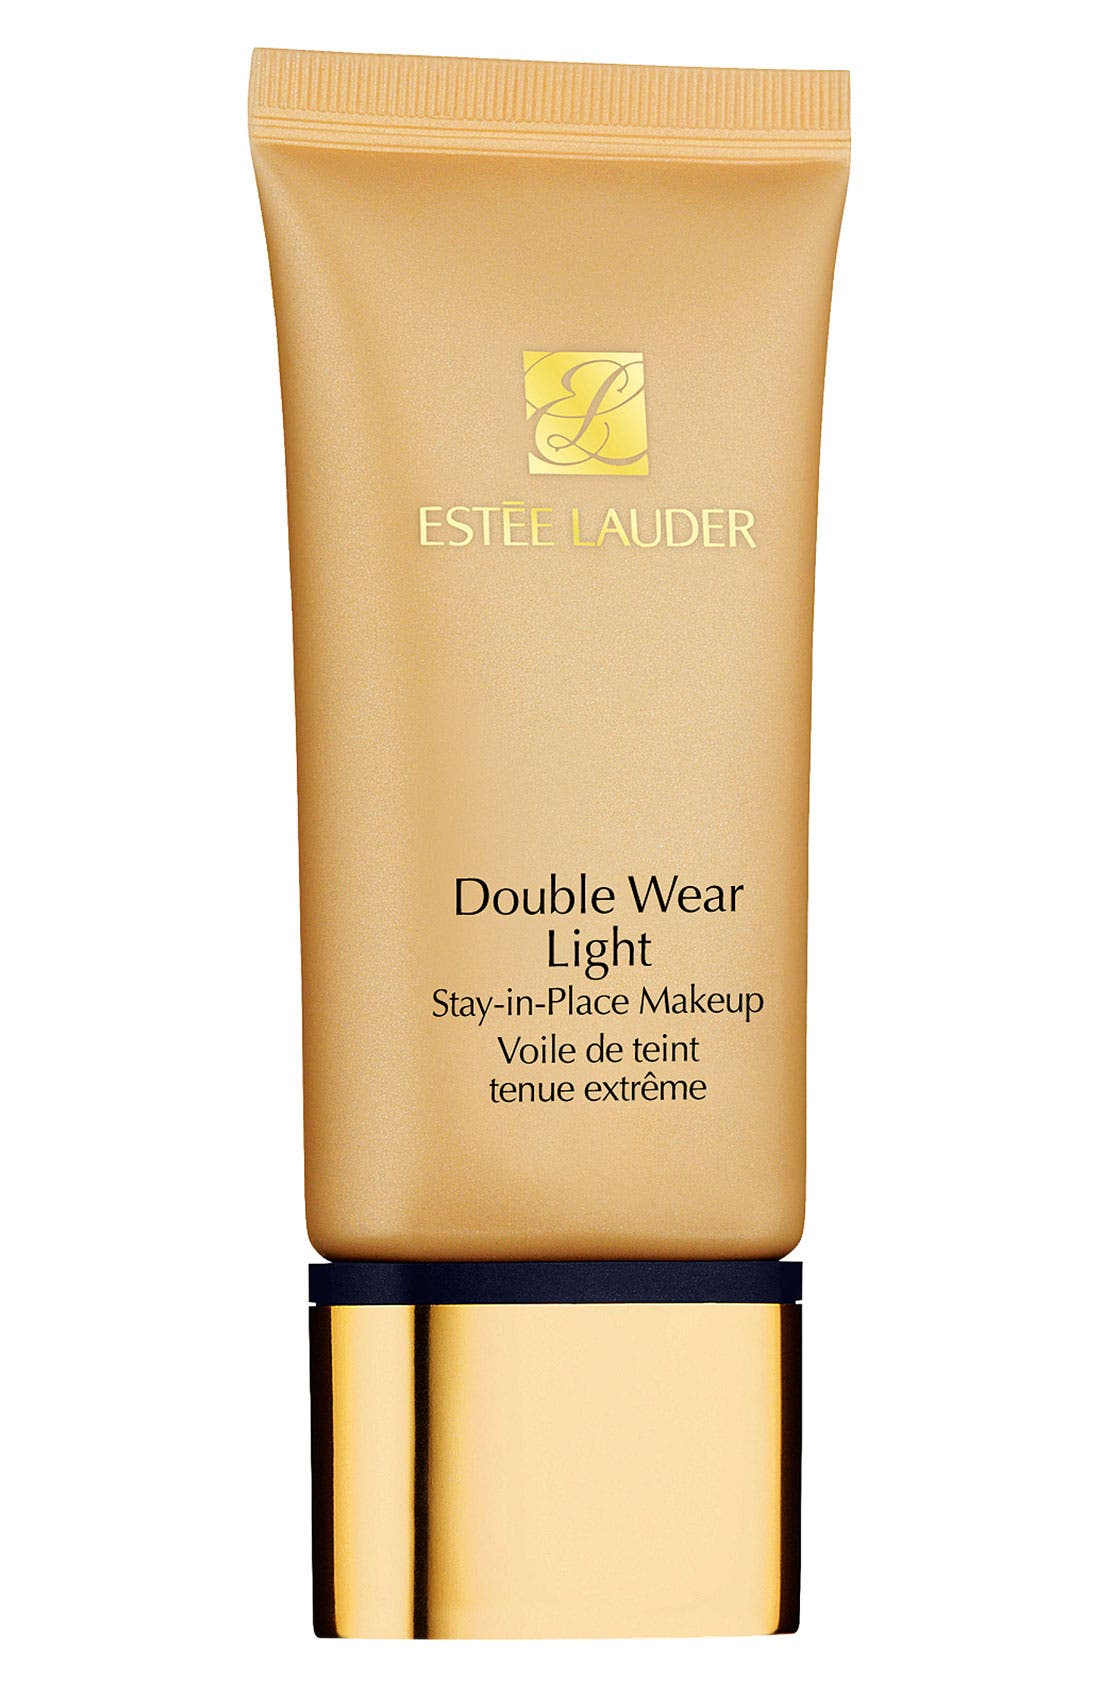 Estée Lauder Double Wear Light Stay-in-Place Makeup